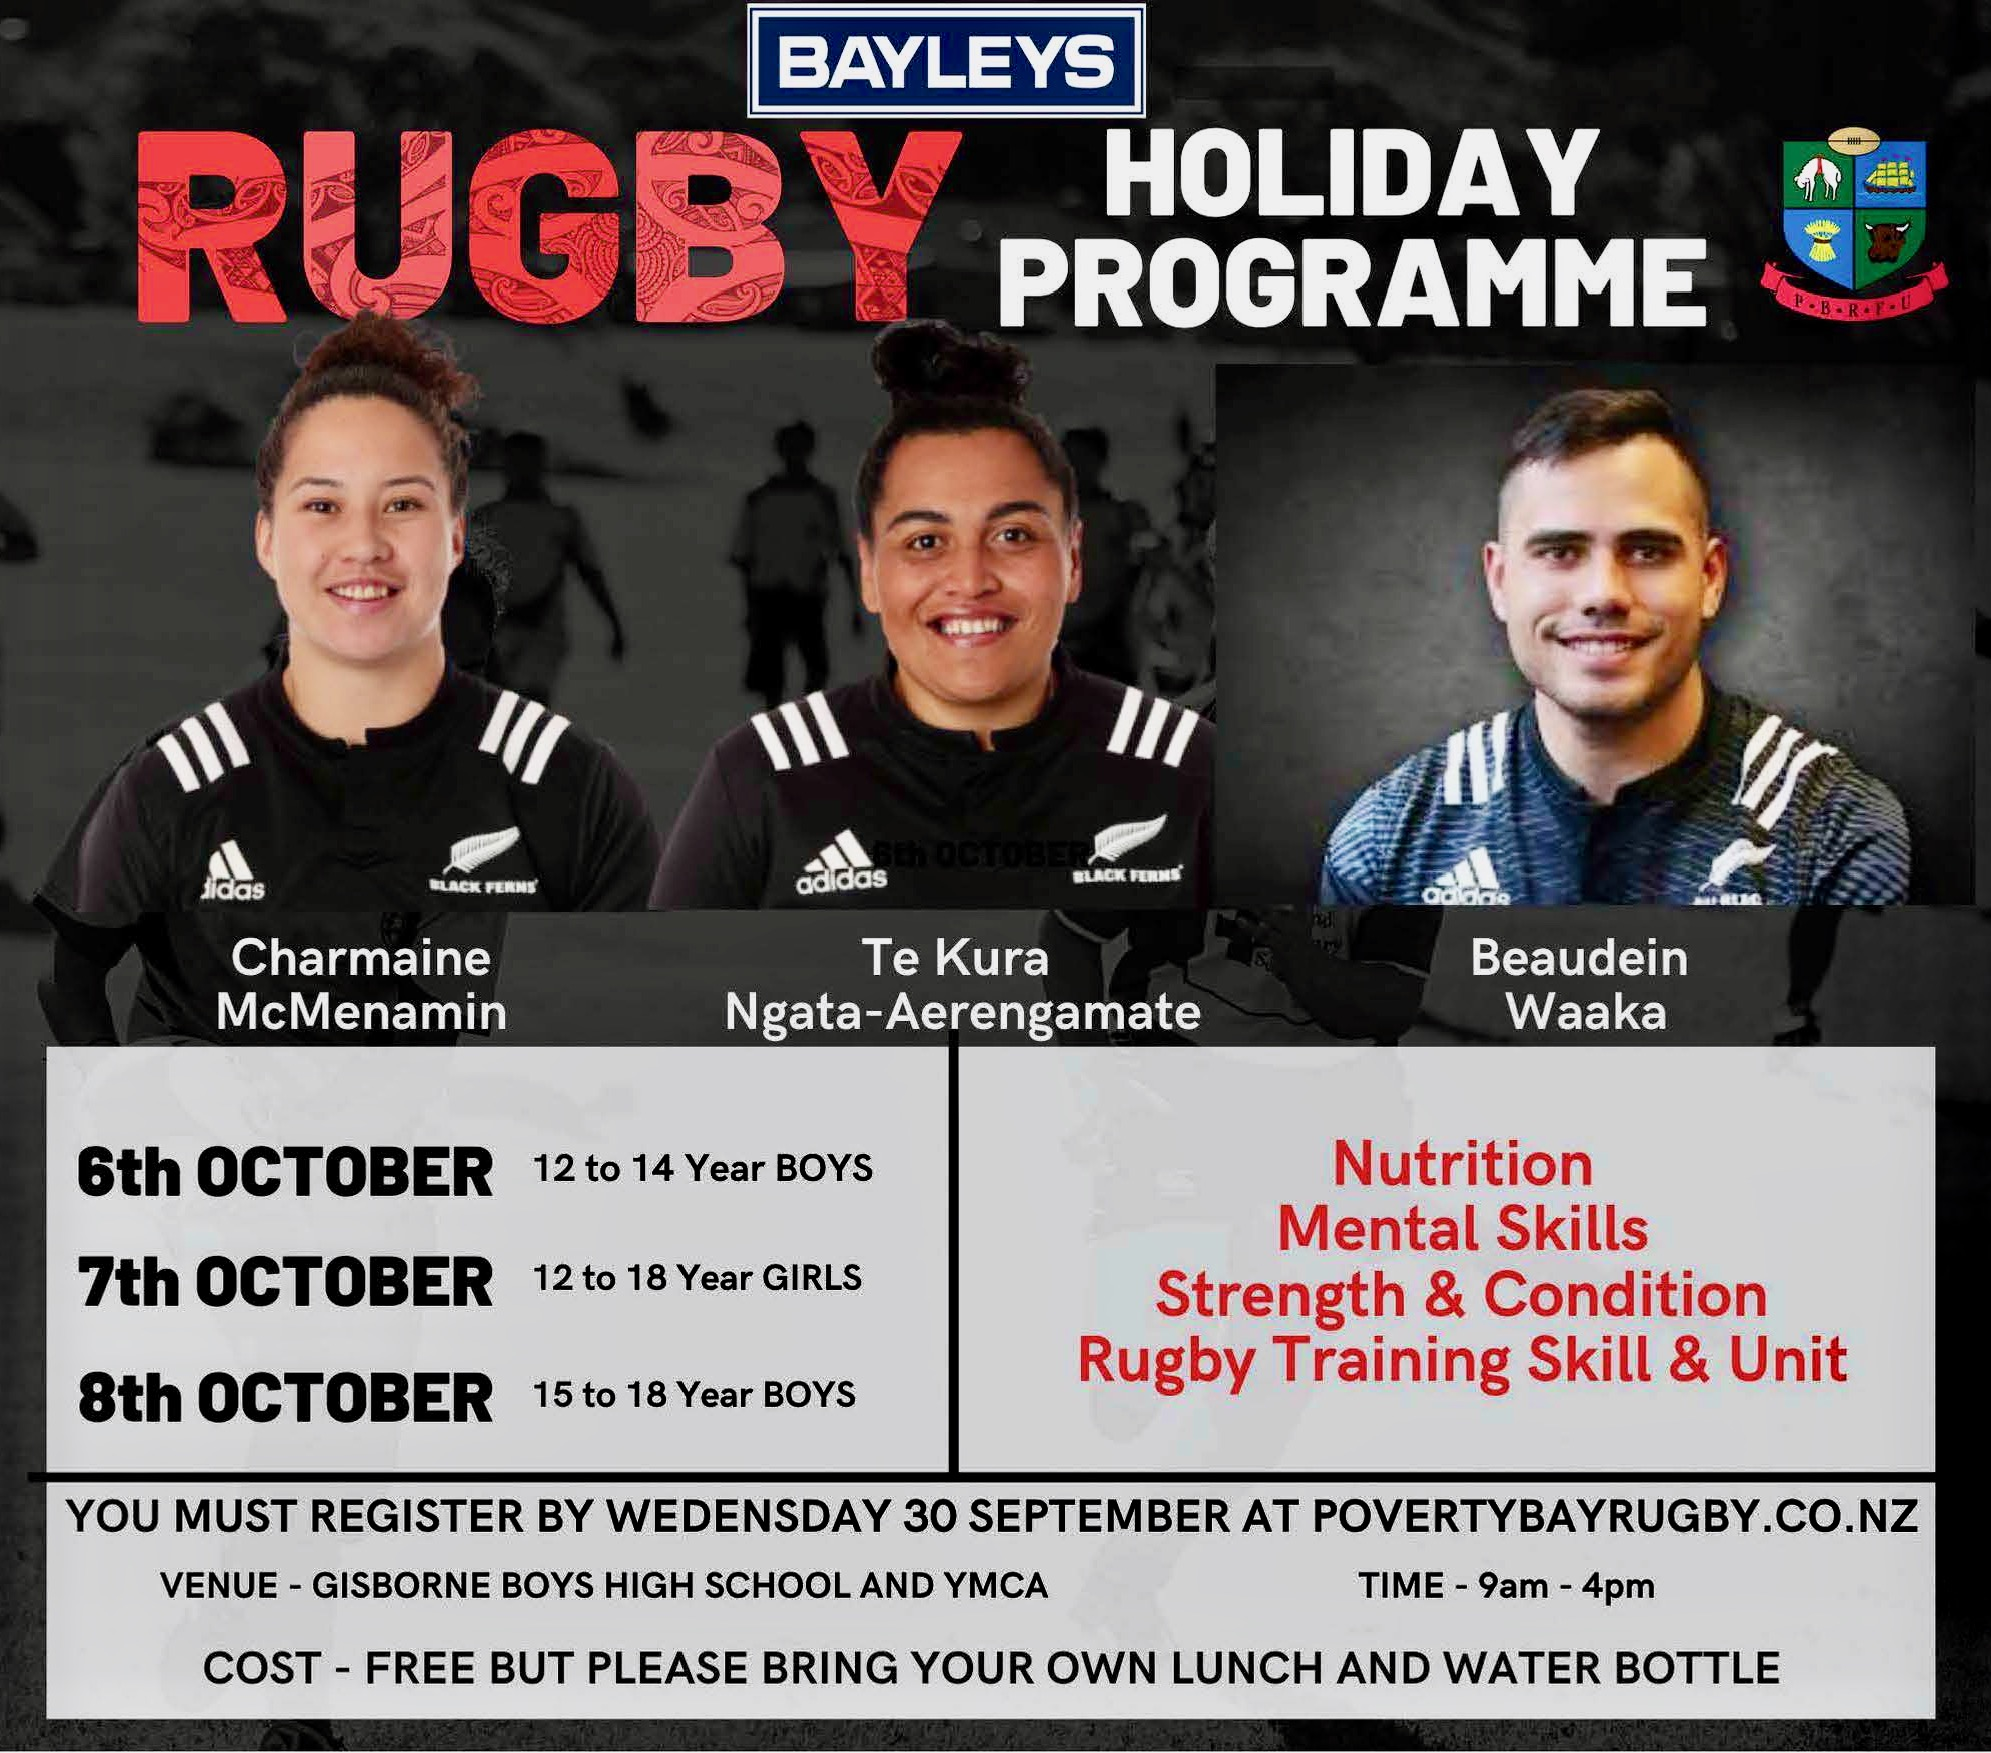 BAYLEYS RUGBY HOLIDAY PROGRAMME